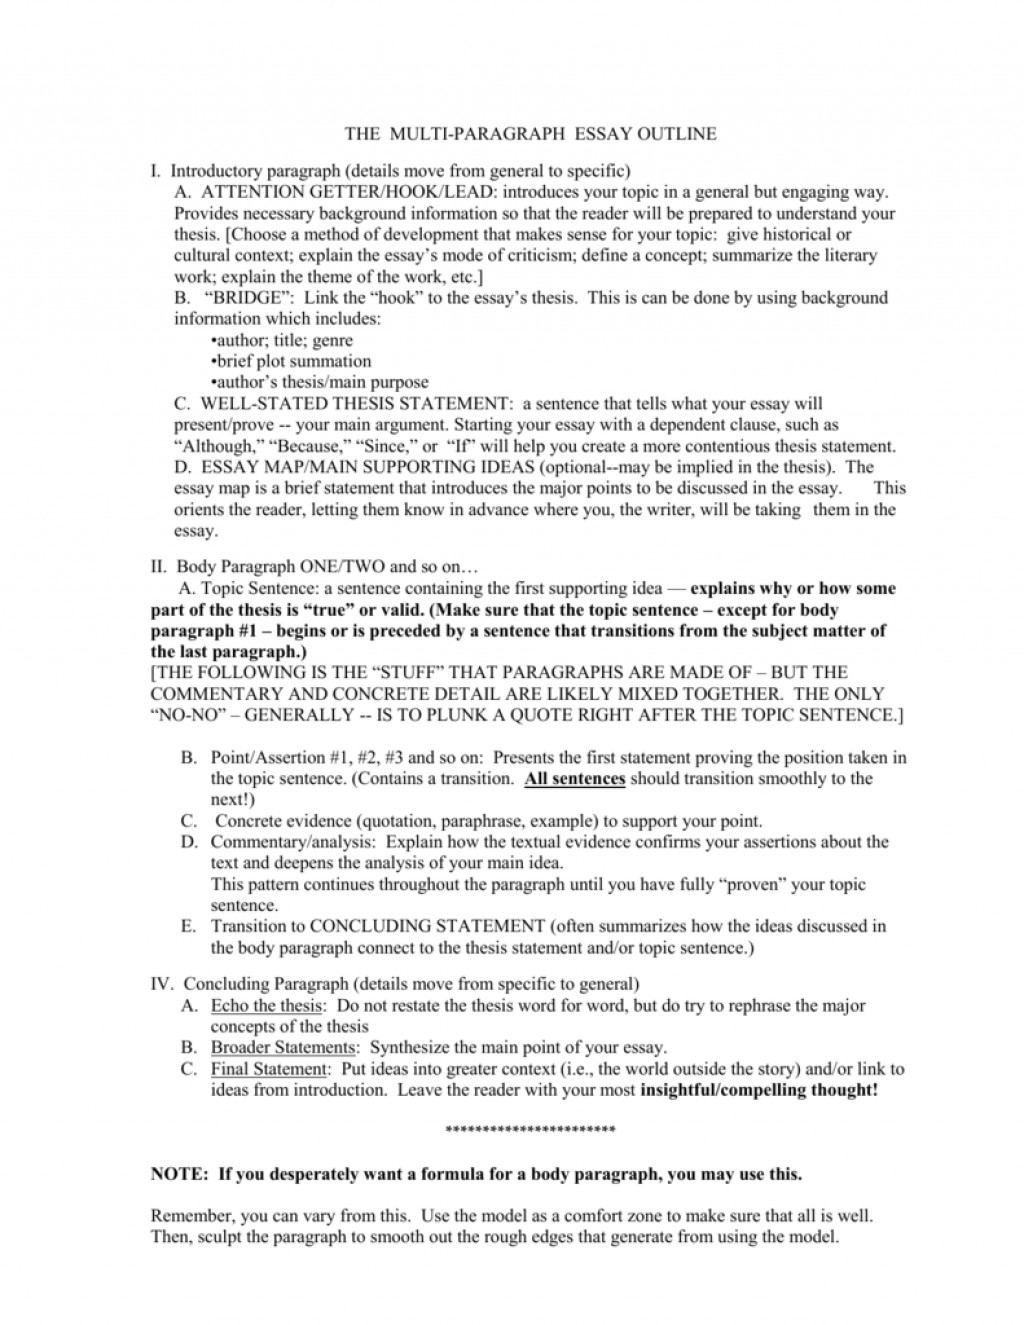 008 009020709 1 Essay Example Multi Best Paragraph Graphic Organizer Format Large